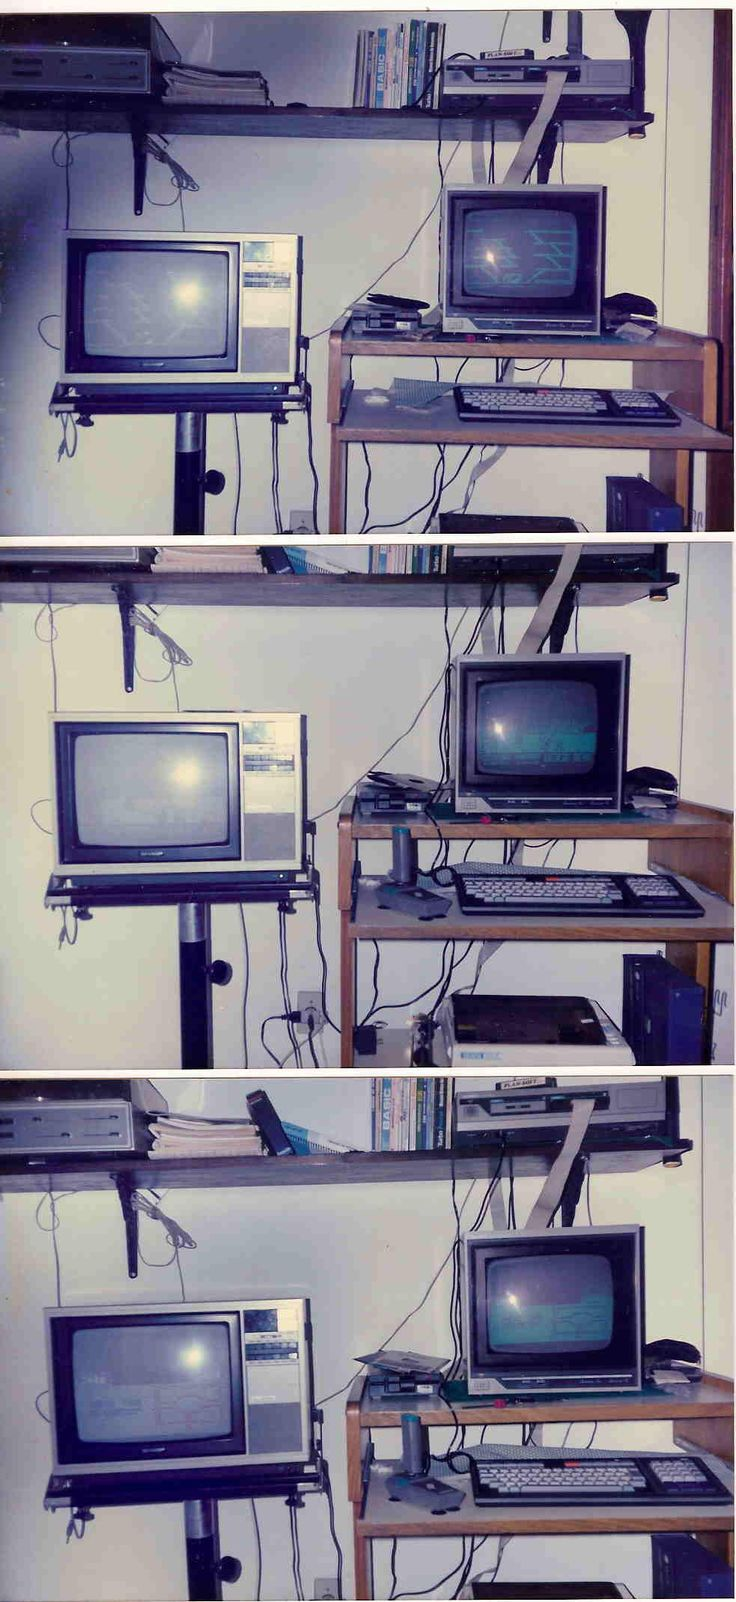 Fotos escaneadas do original, circa 1988. Um Expert 1.1 com interface de drive DDX, impressora, monitor fósforo verde Gradiente e uma TV Sharp.